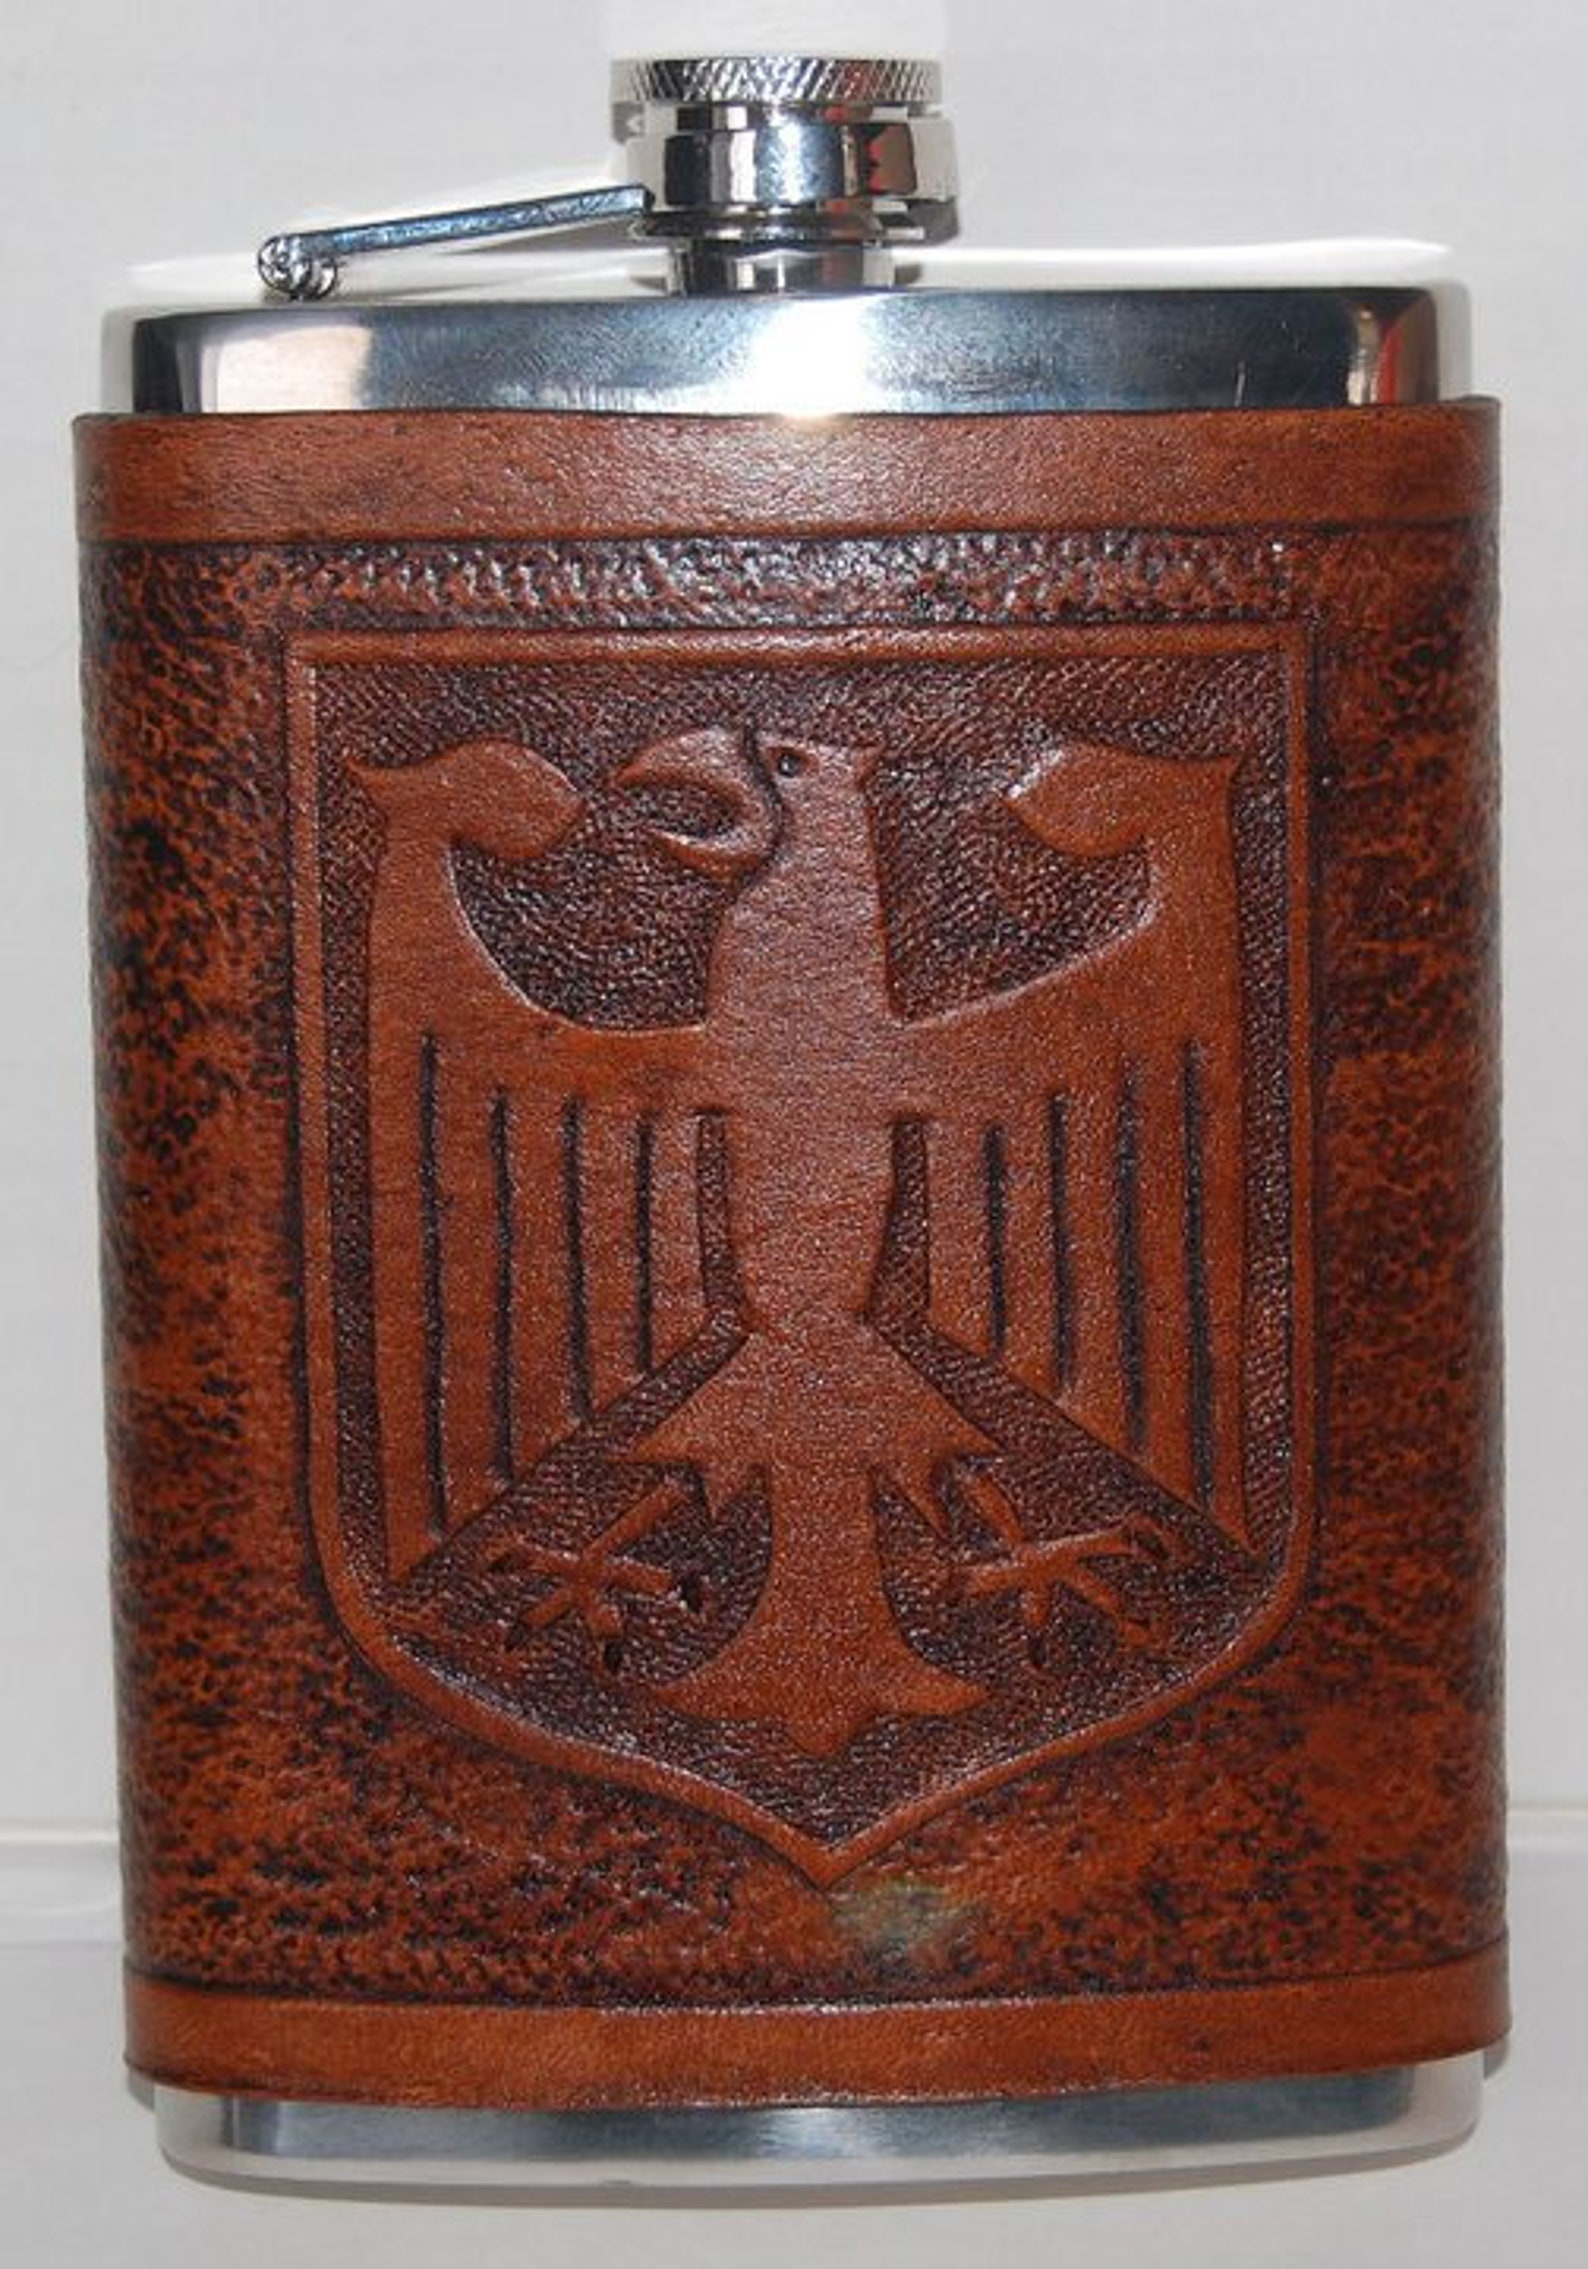 8 ounce stainless steel flask with a leather wrap that has a German Eagle carved in it